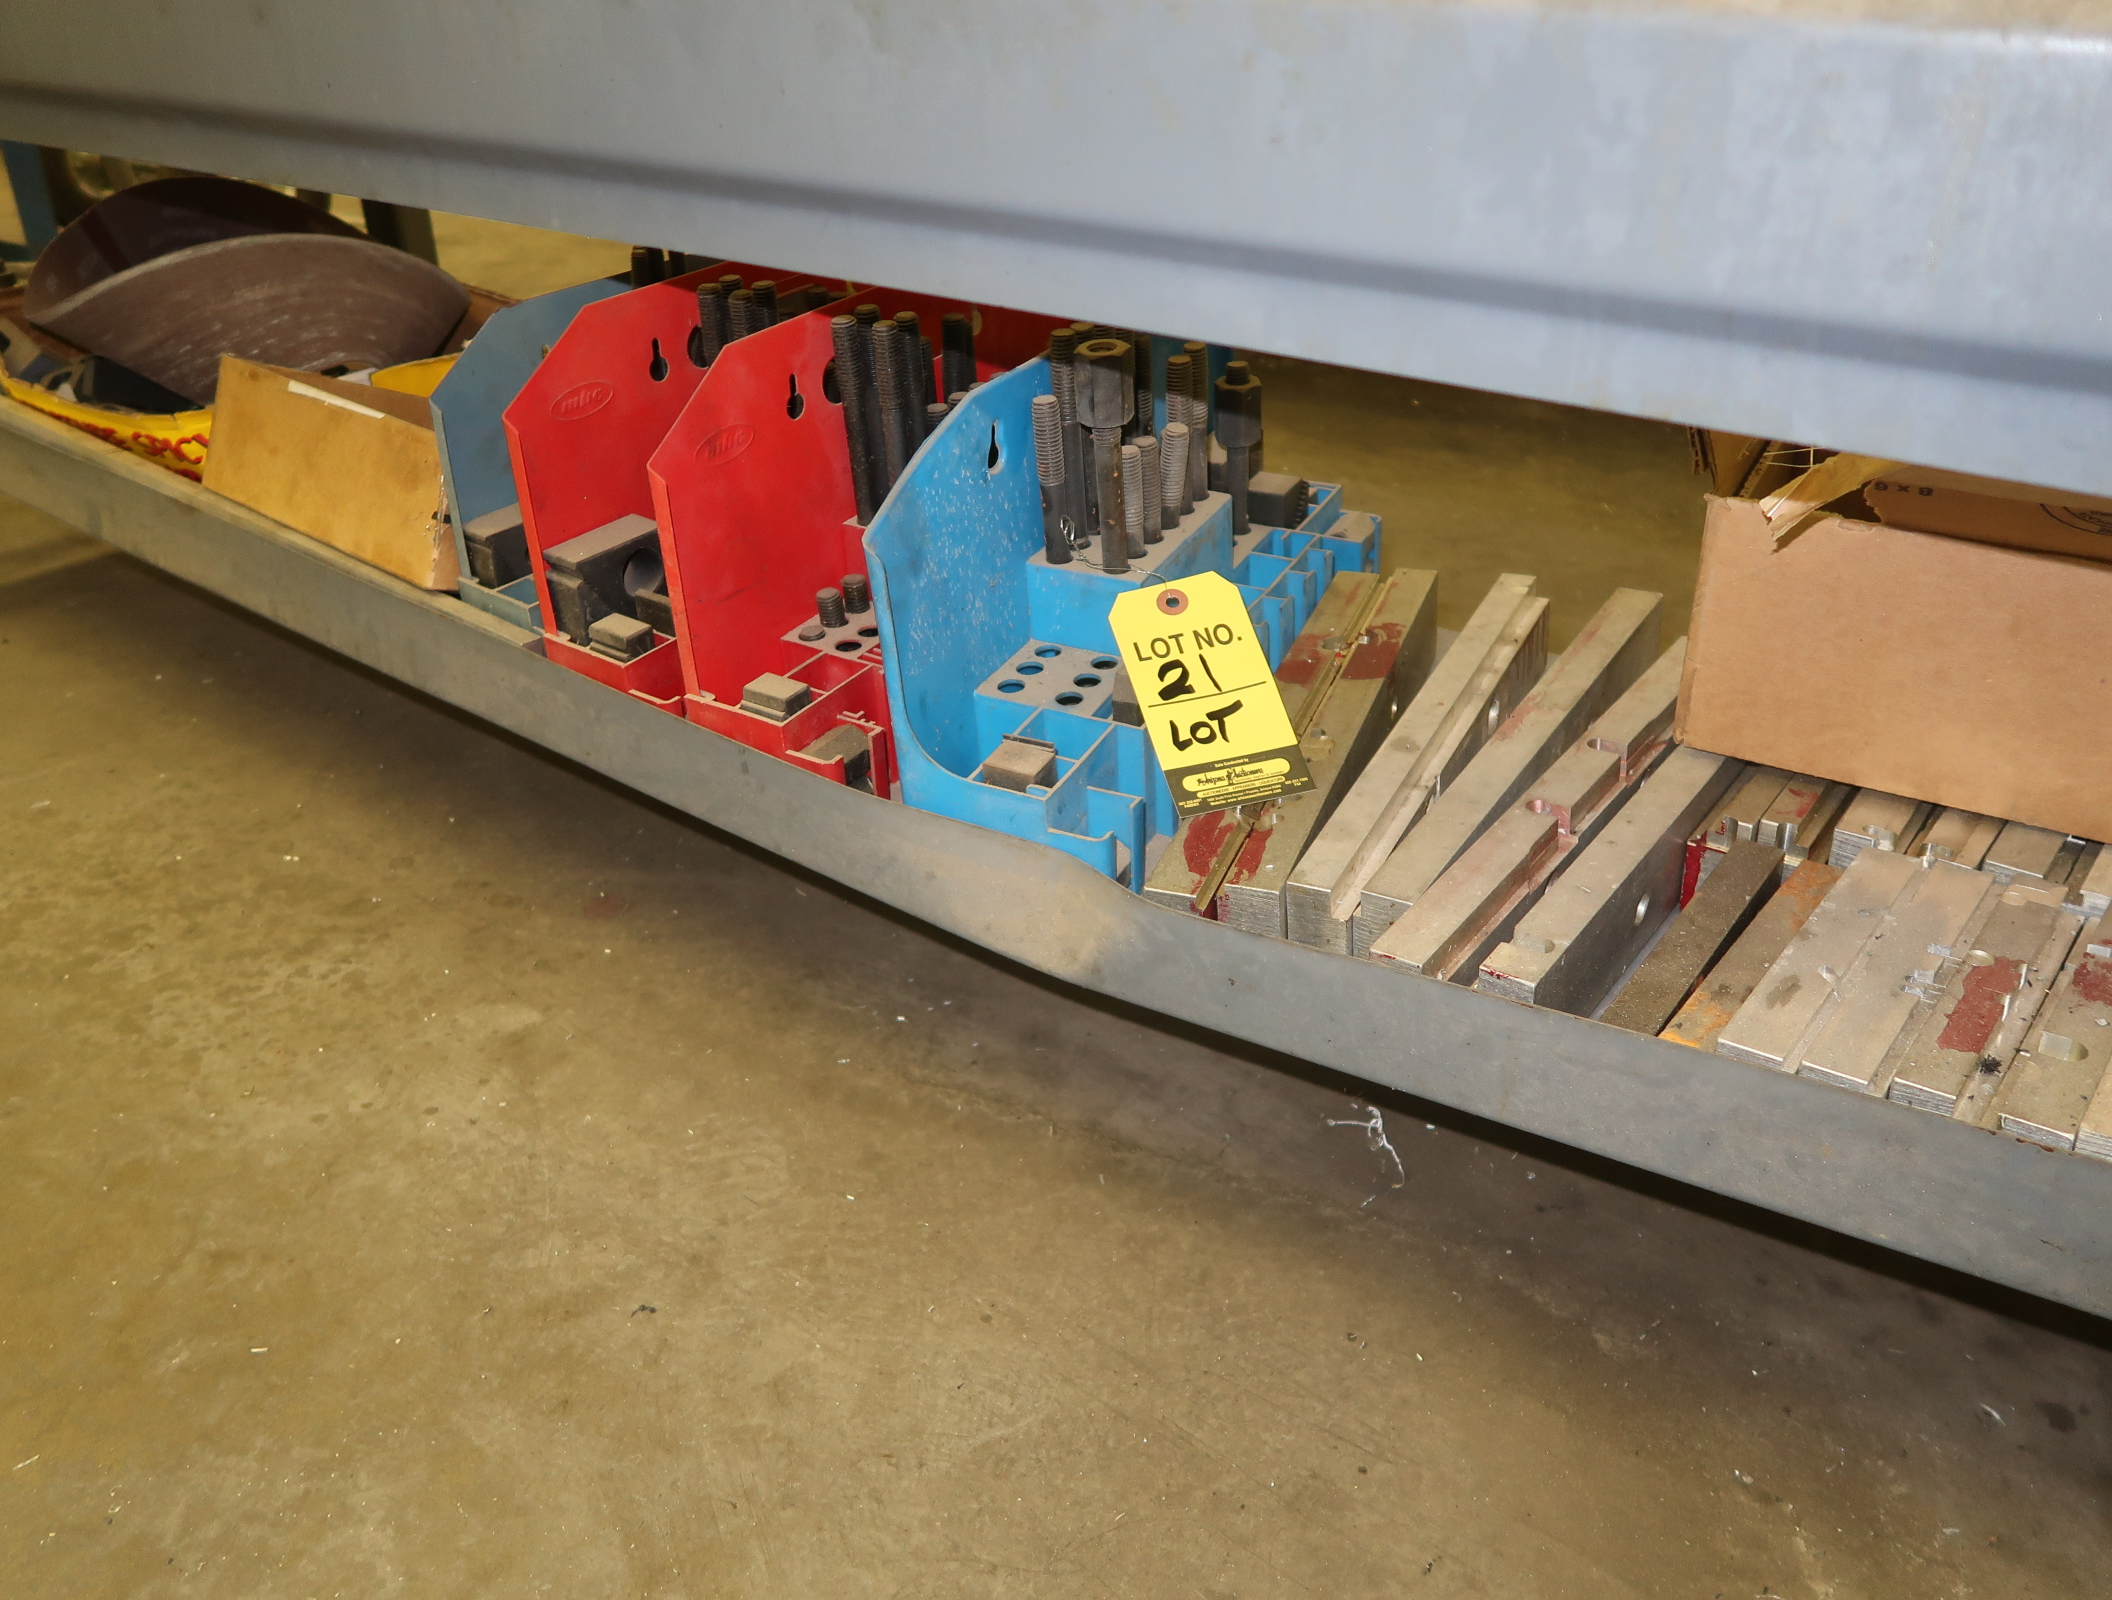 LOT SHOP TABLE W/ TOOL CLAMP KITS, ETC. UNDER TABLE - Image 2 of 2